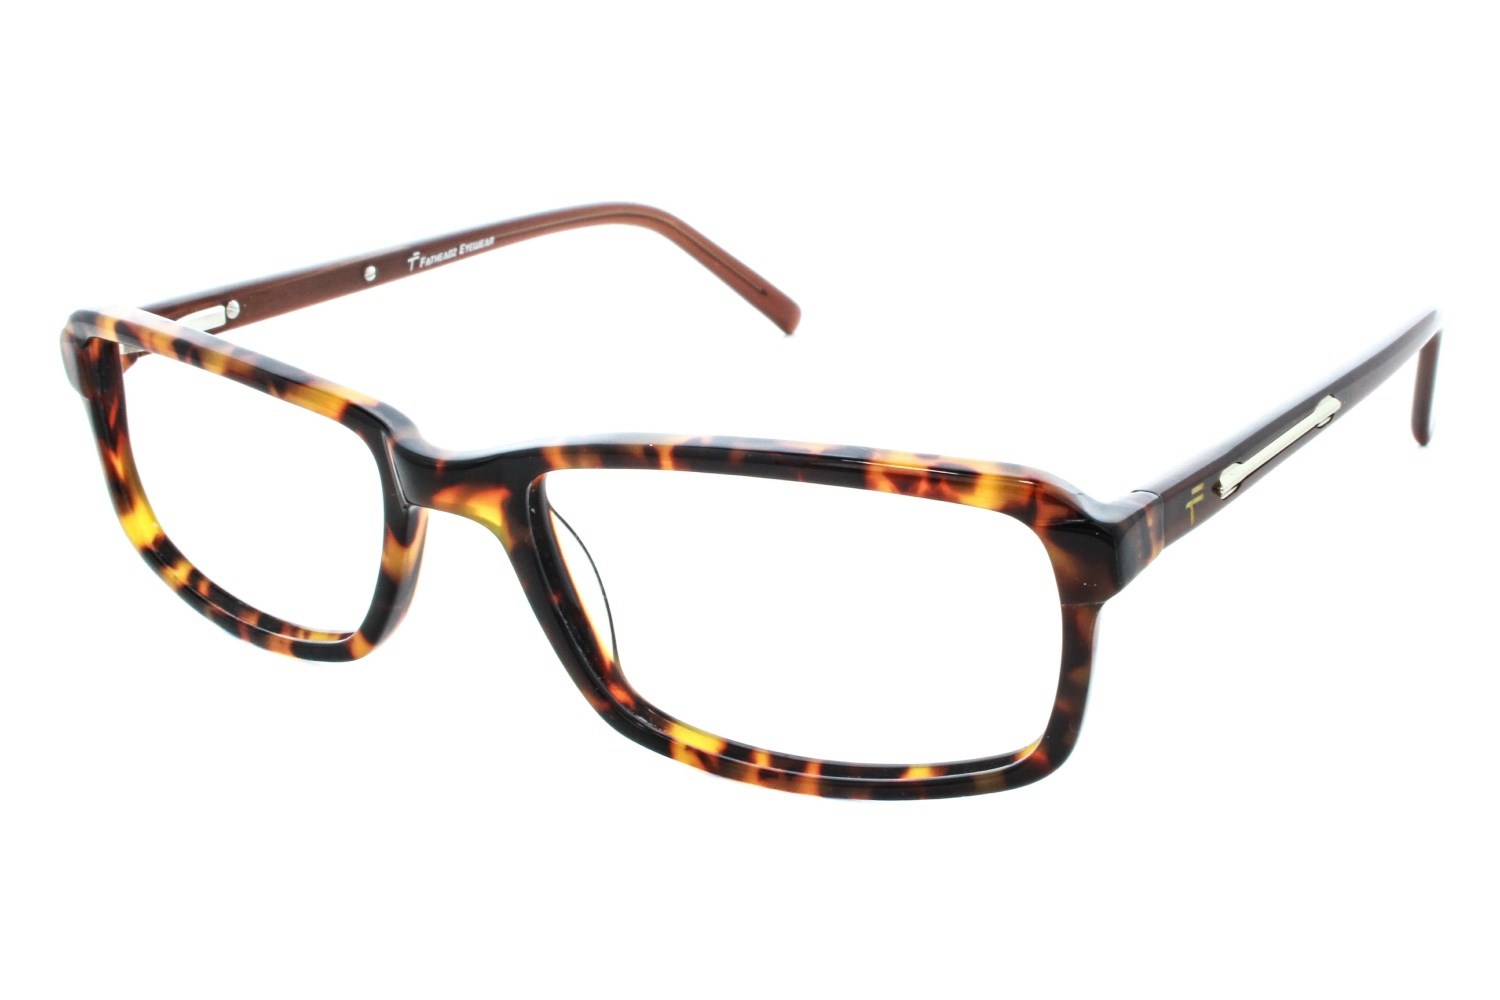 Eyeglass Frame Lookup : Eyeglasses: Brand Fatheadz Eyewear glasses and contact ...